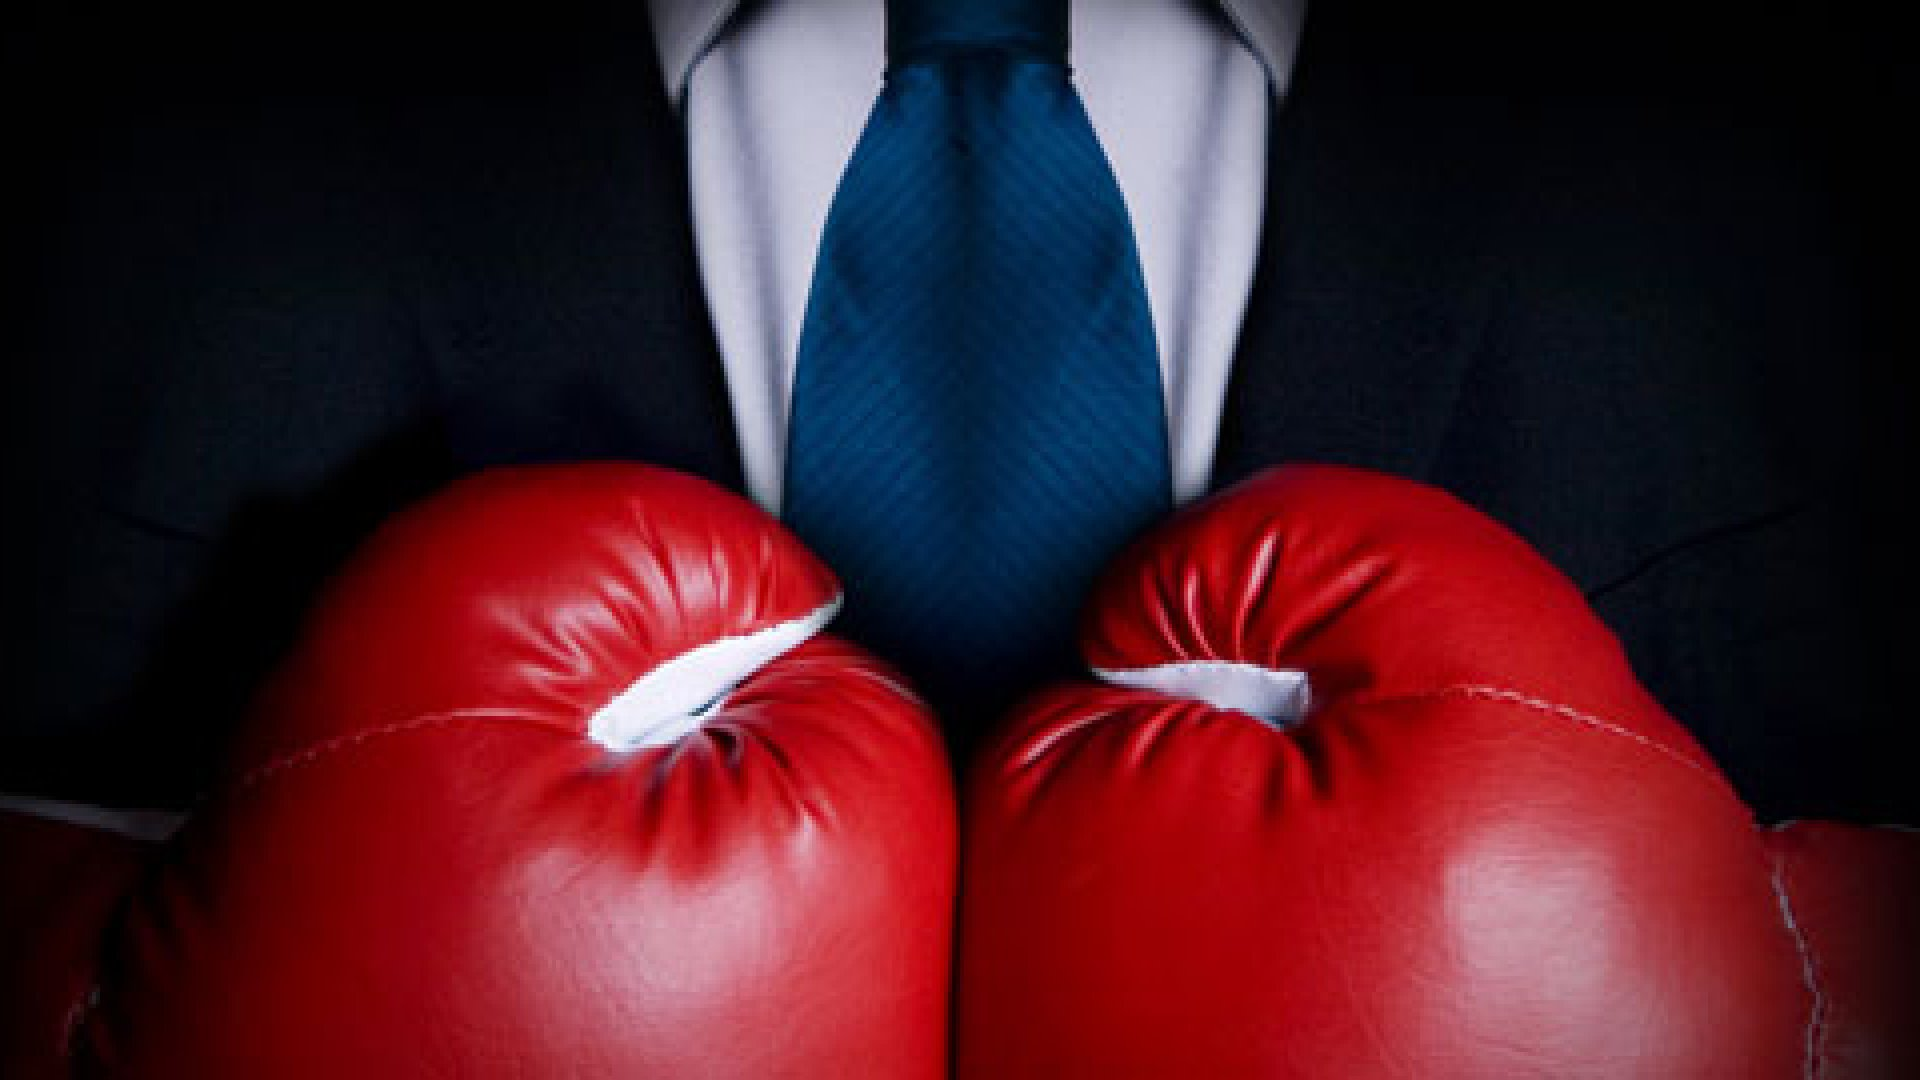 Can't We All <i>Not</i> Get Along? 5 Rules for Healthy Conflict